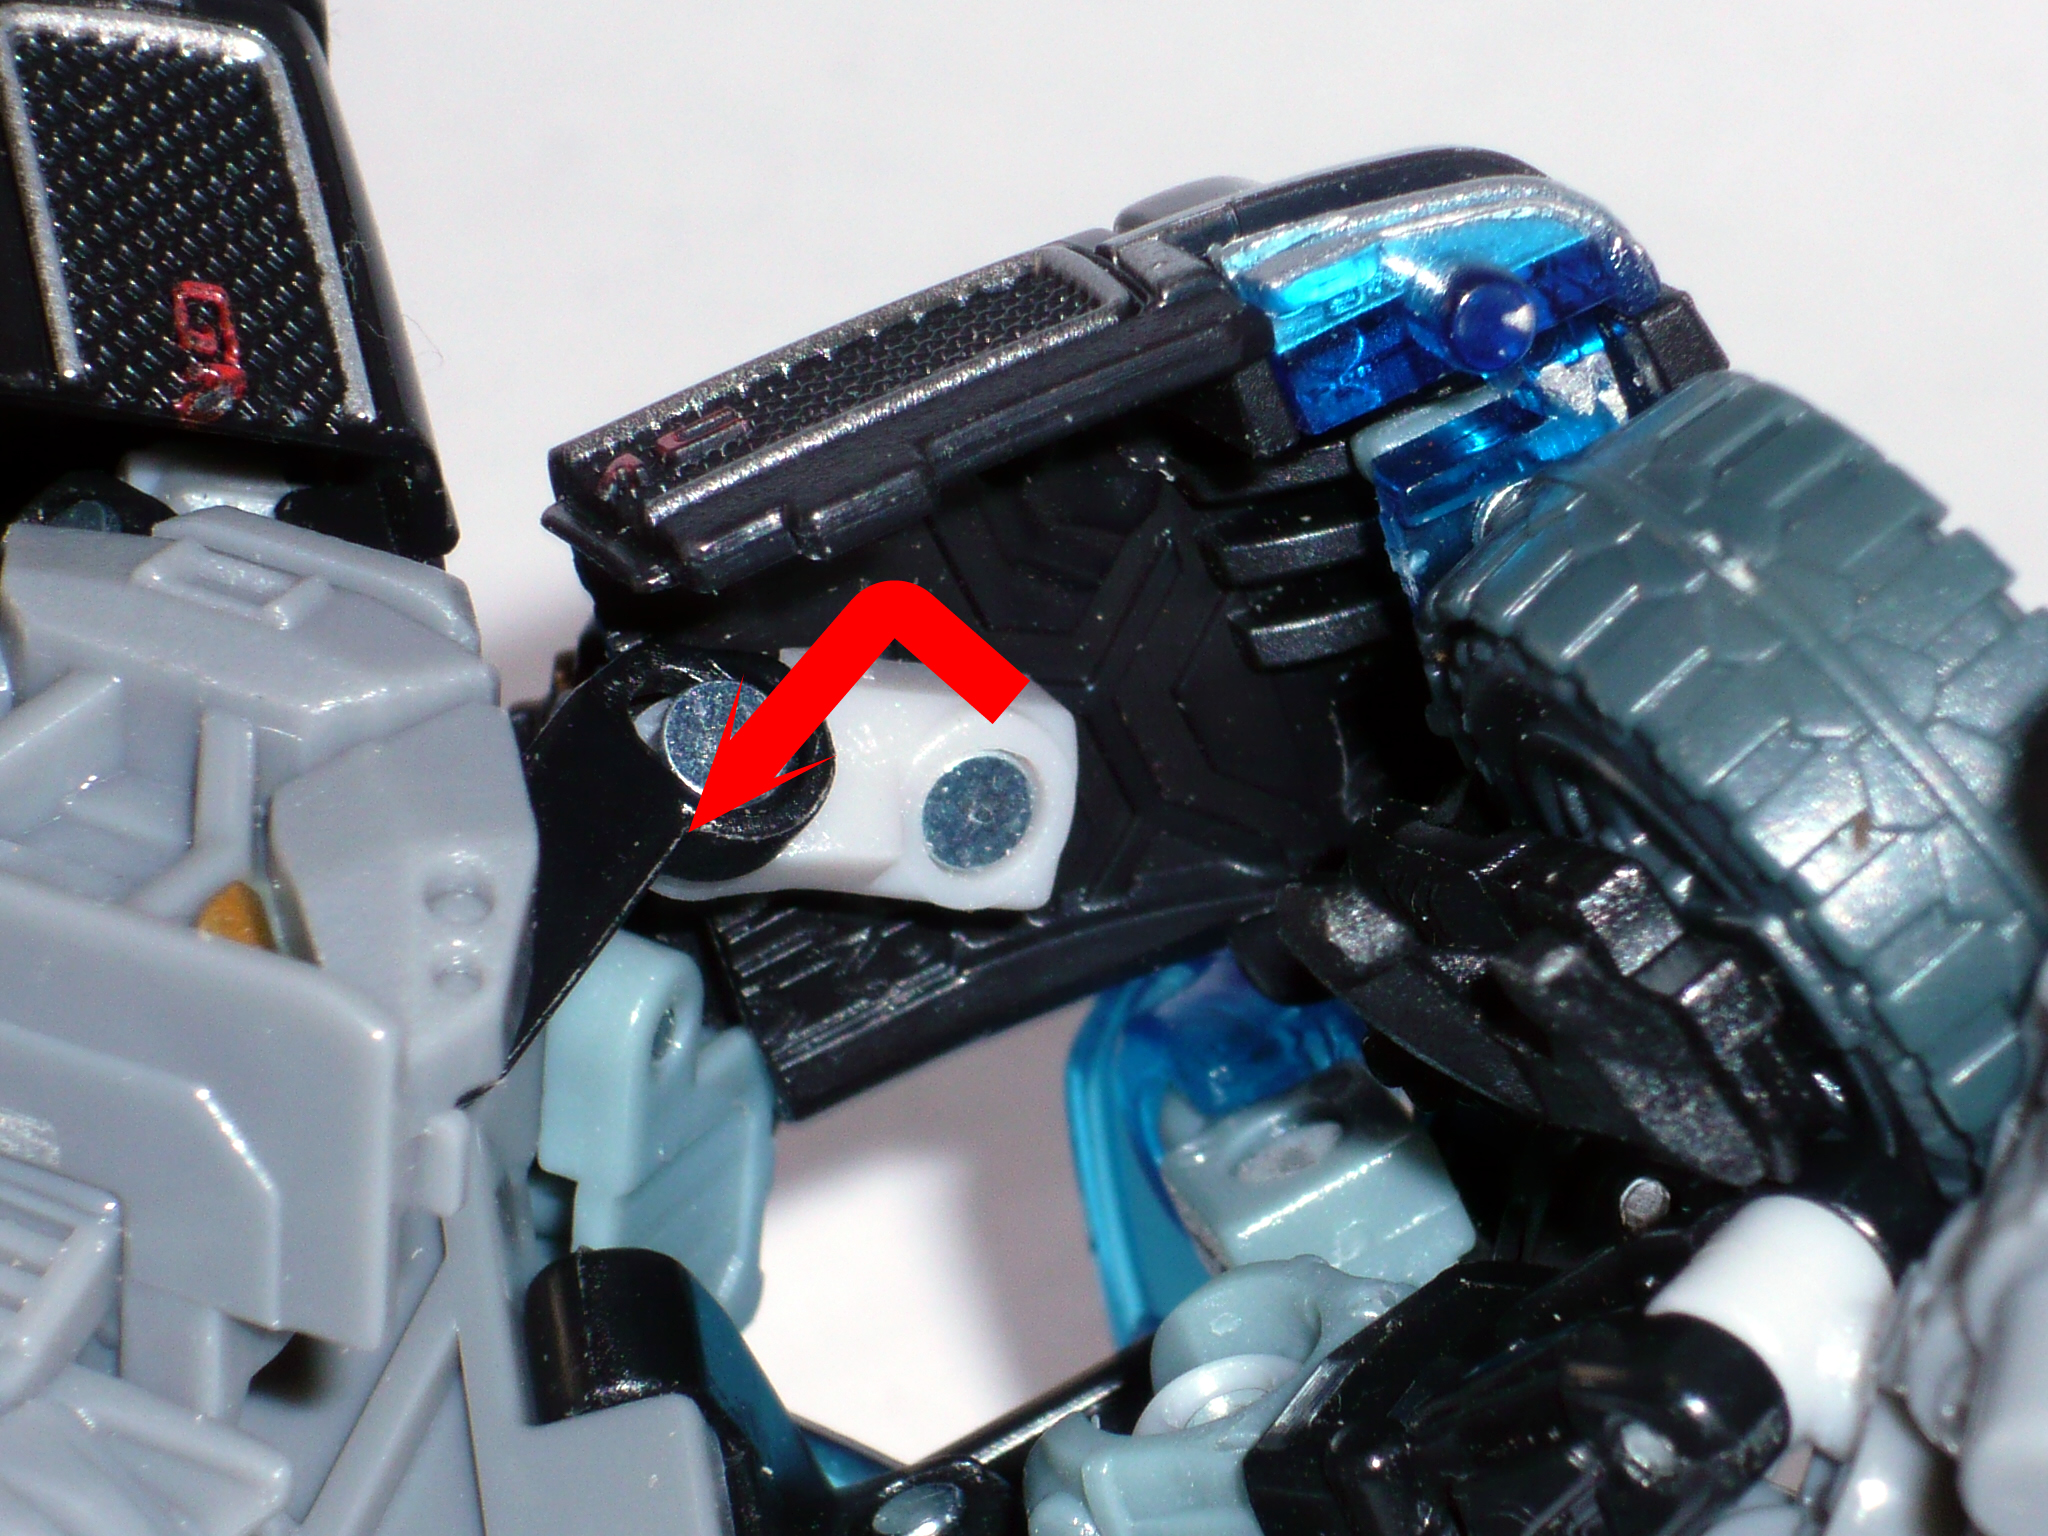 Hip/Stomach Fix/Mod for DotM Voyager Ironhide-p1130885.jpg